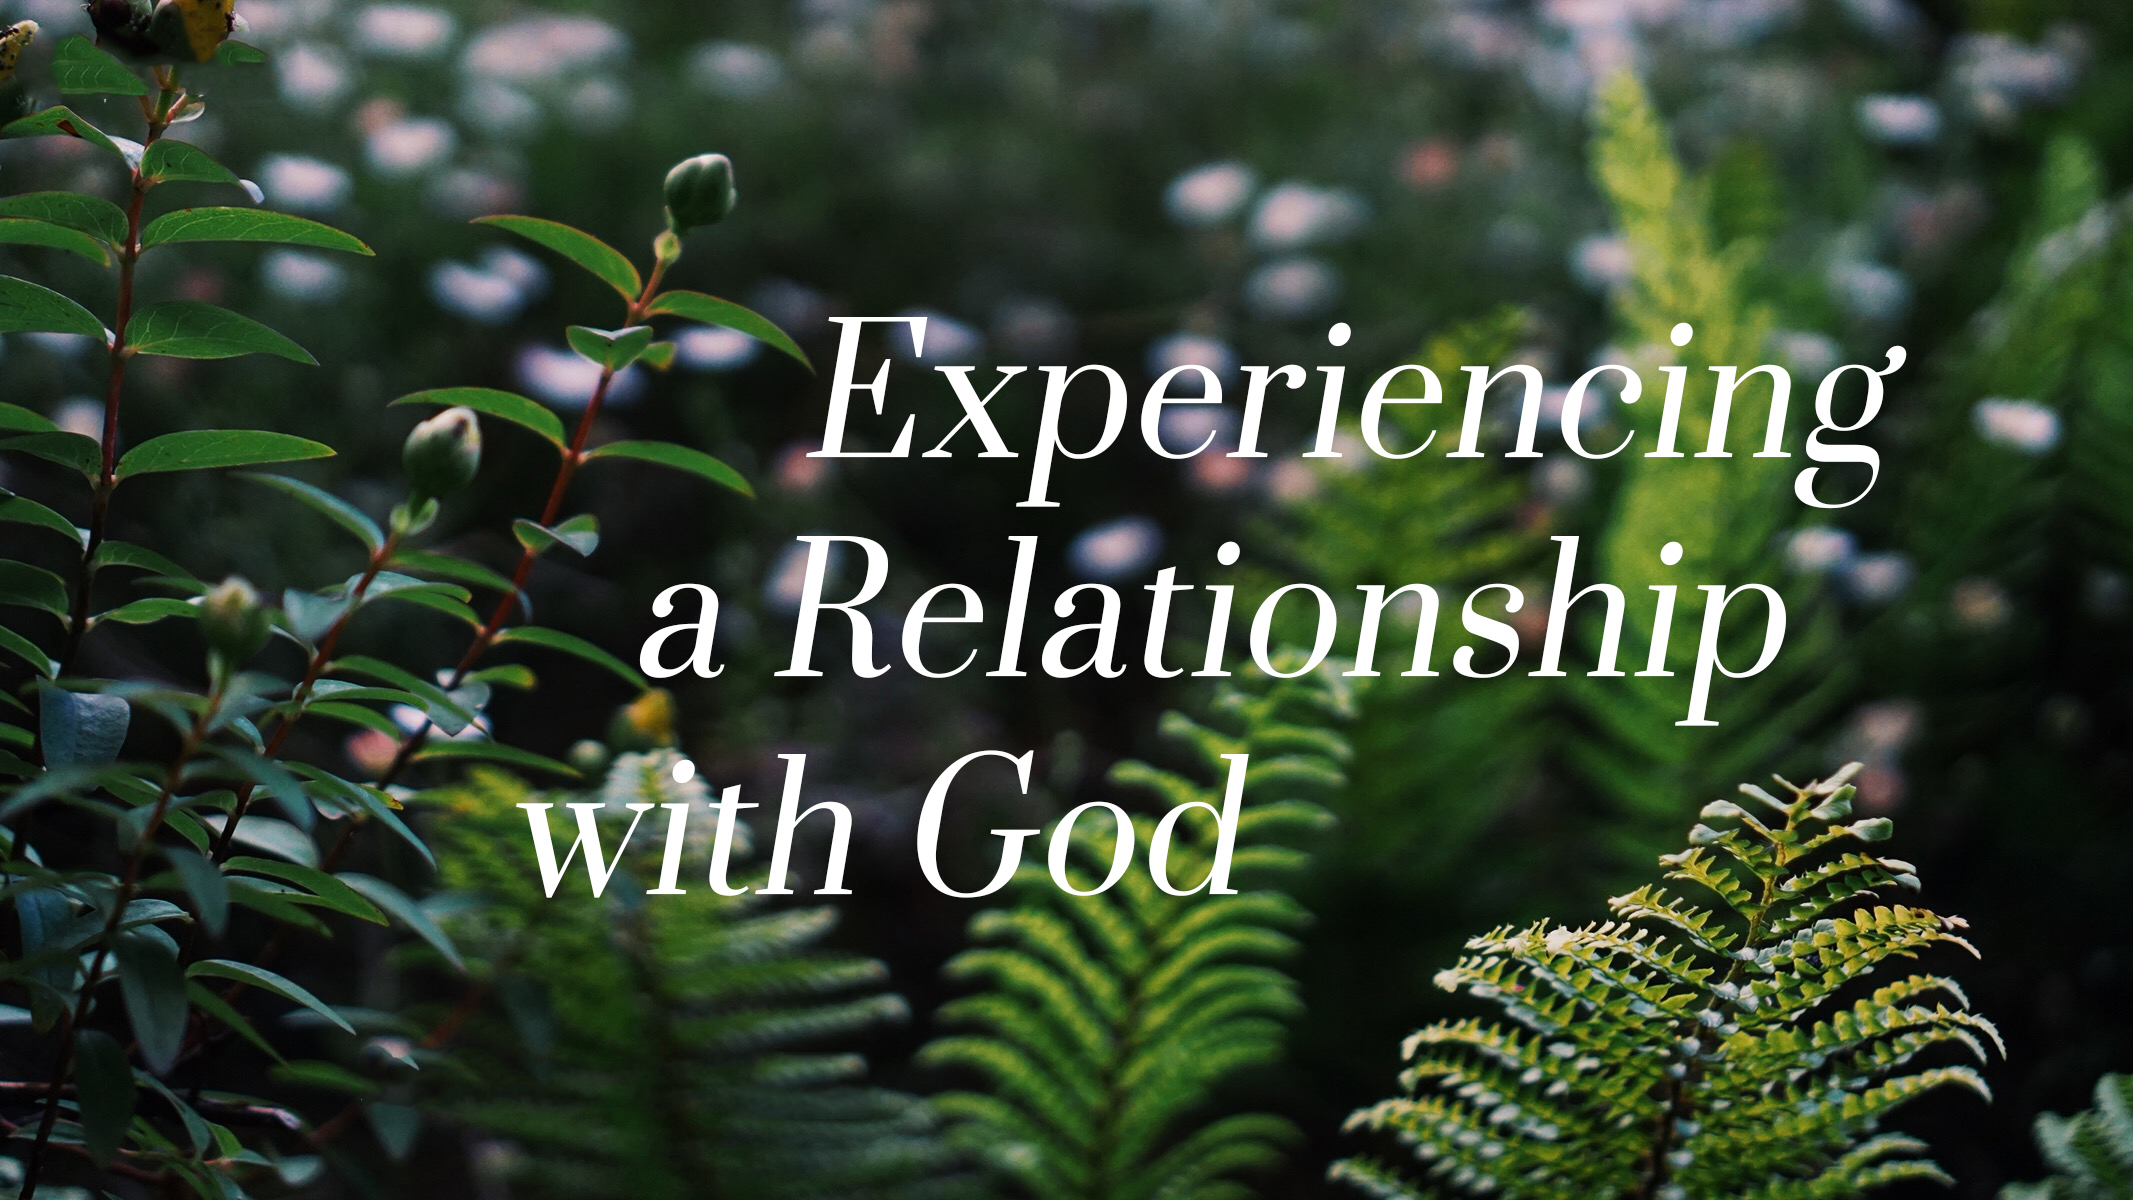 Experiencing a Relationship with God